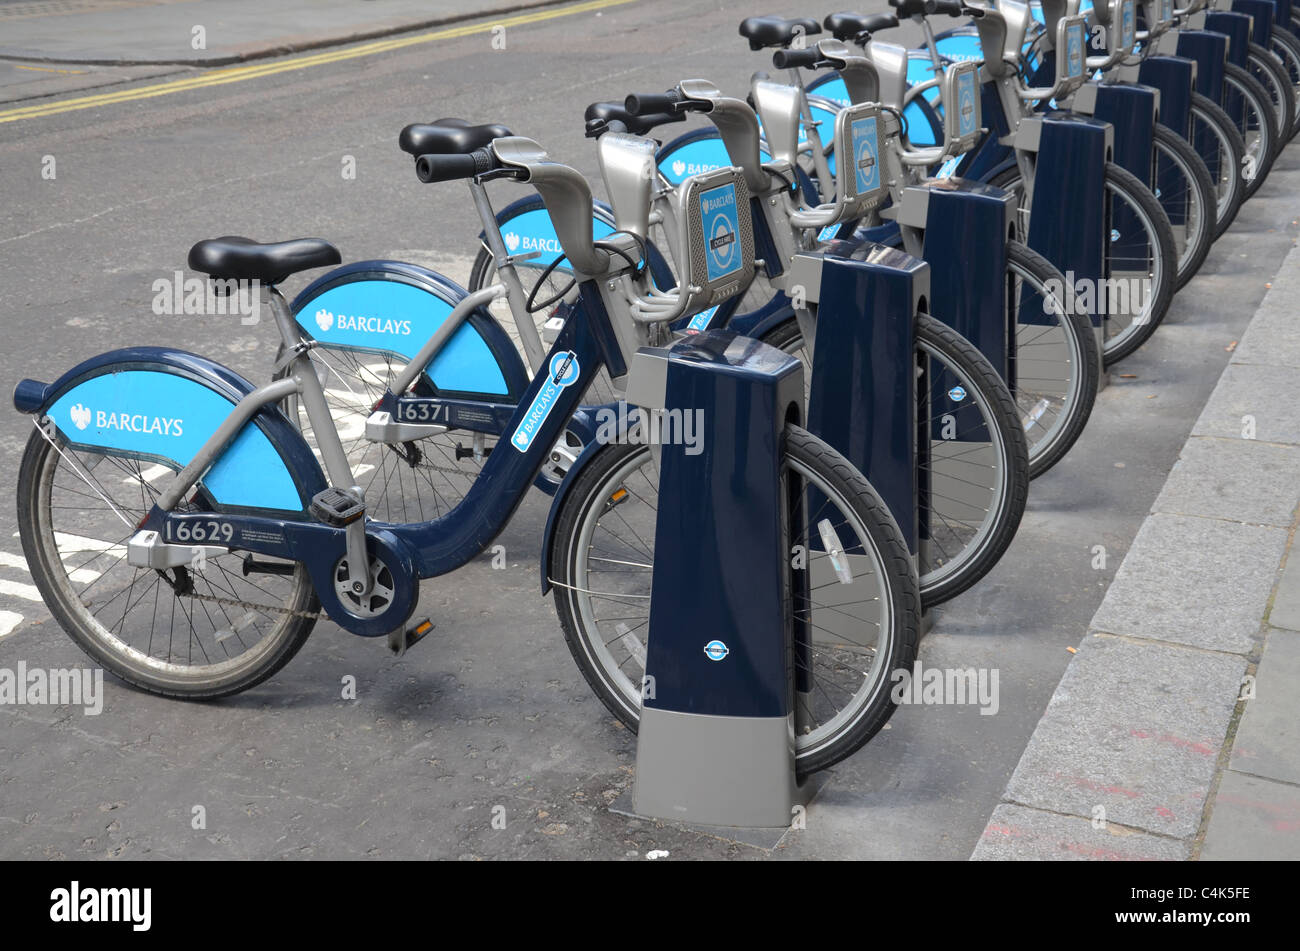 Barclays Transport for London Cycling scheme cycles in a bicycle rack for hire. - Stock Image